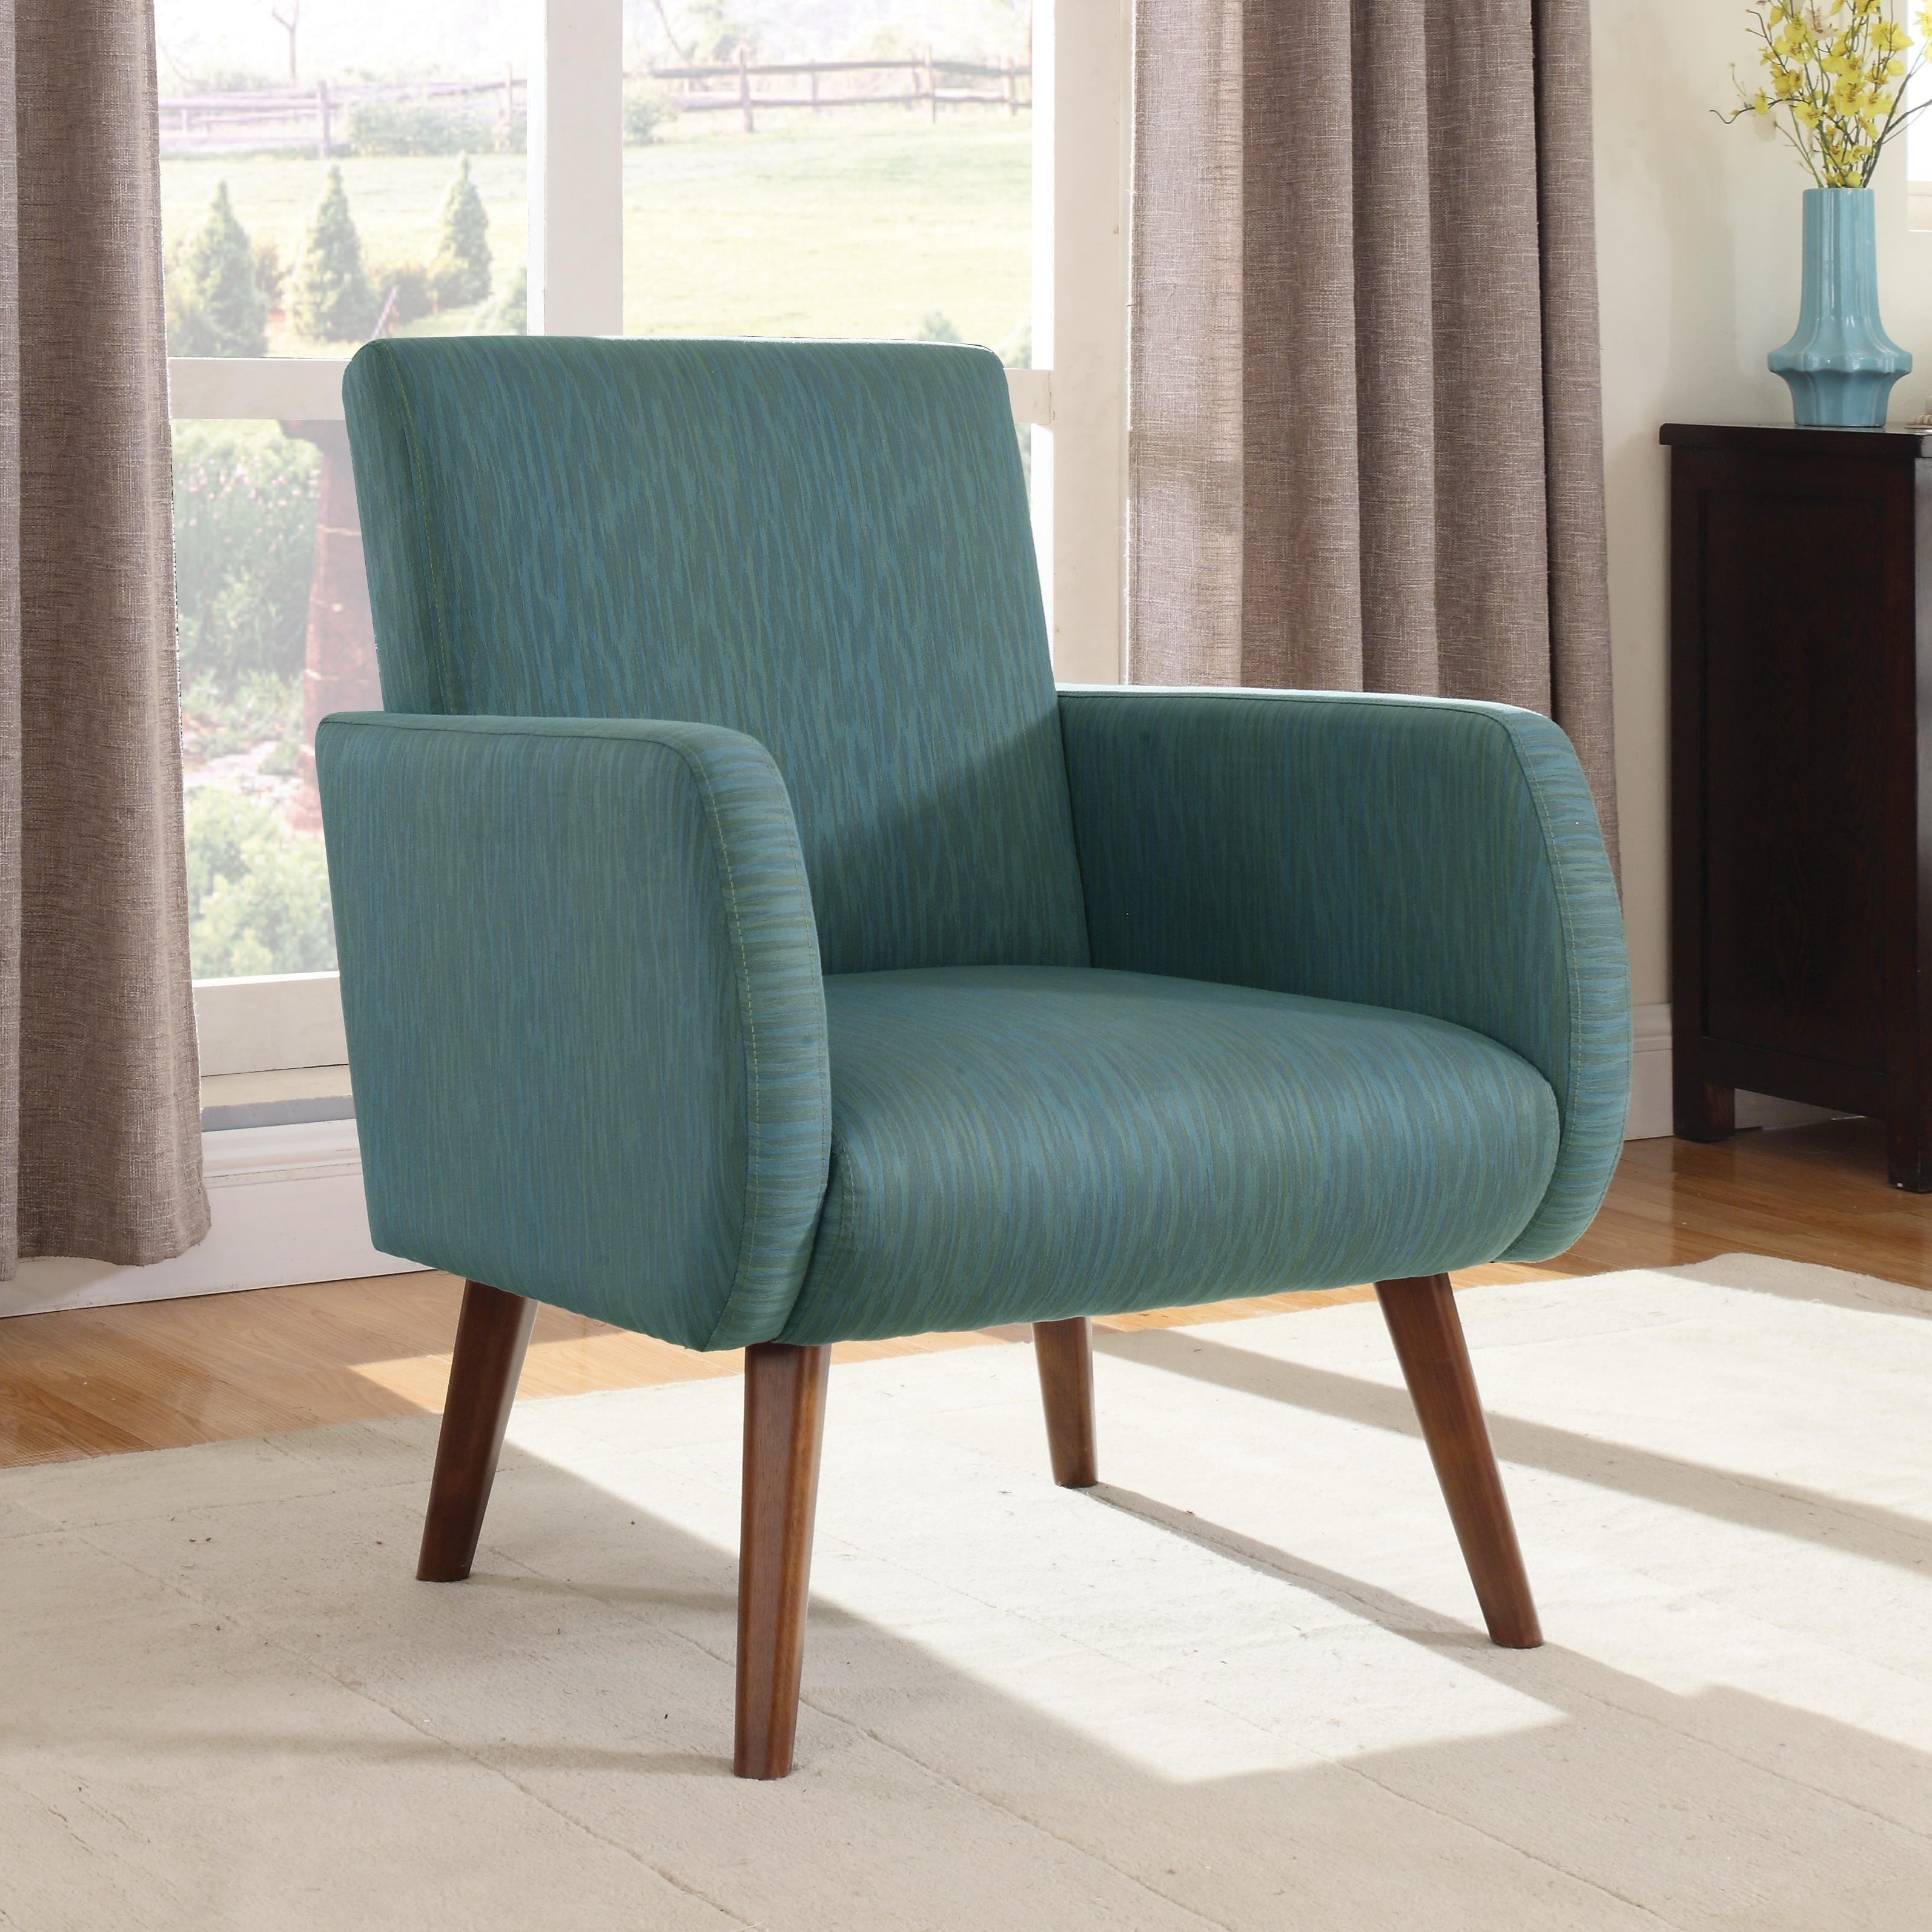 Ordinaire Coaster Accent Seating Mid Century Modern Accent Chair